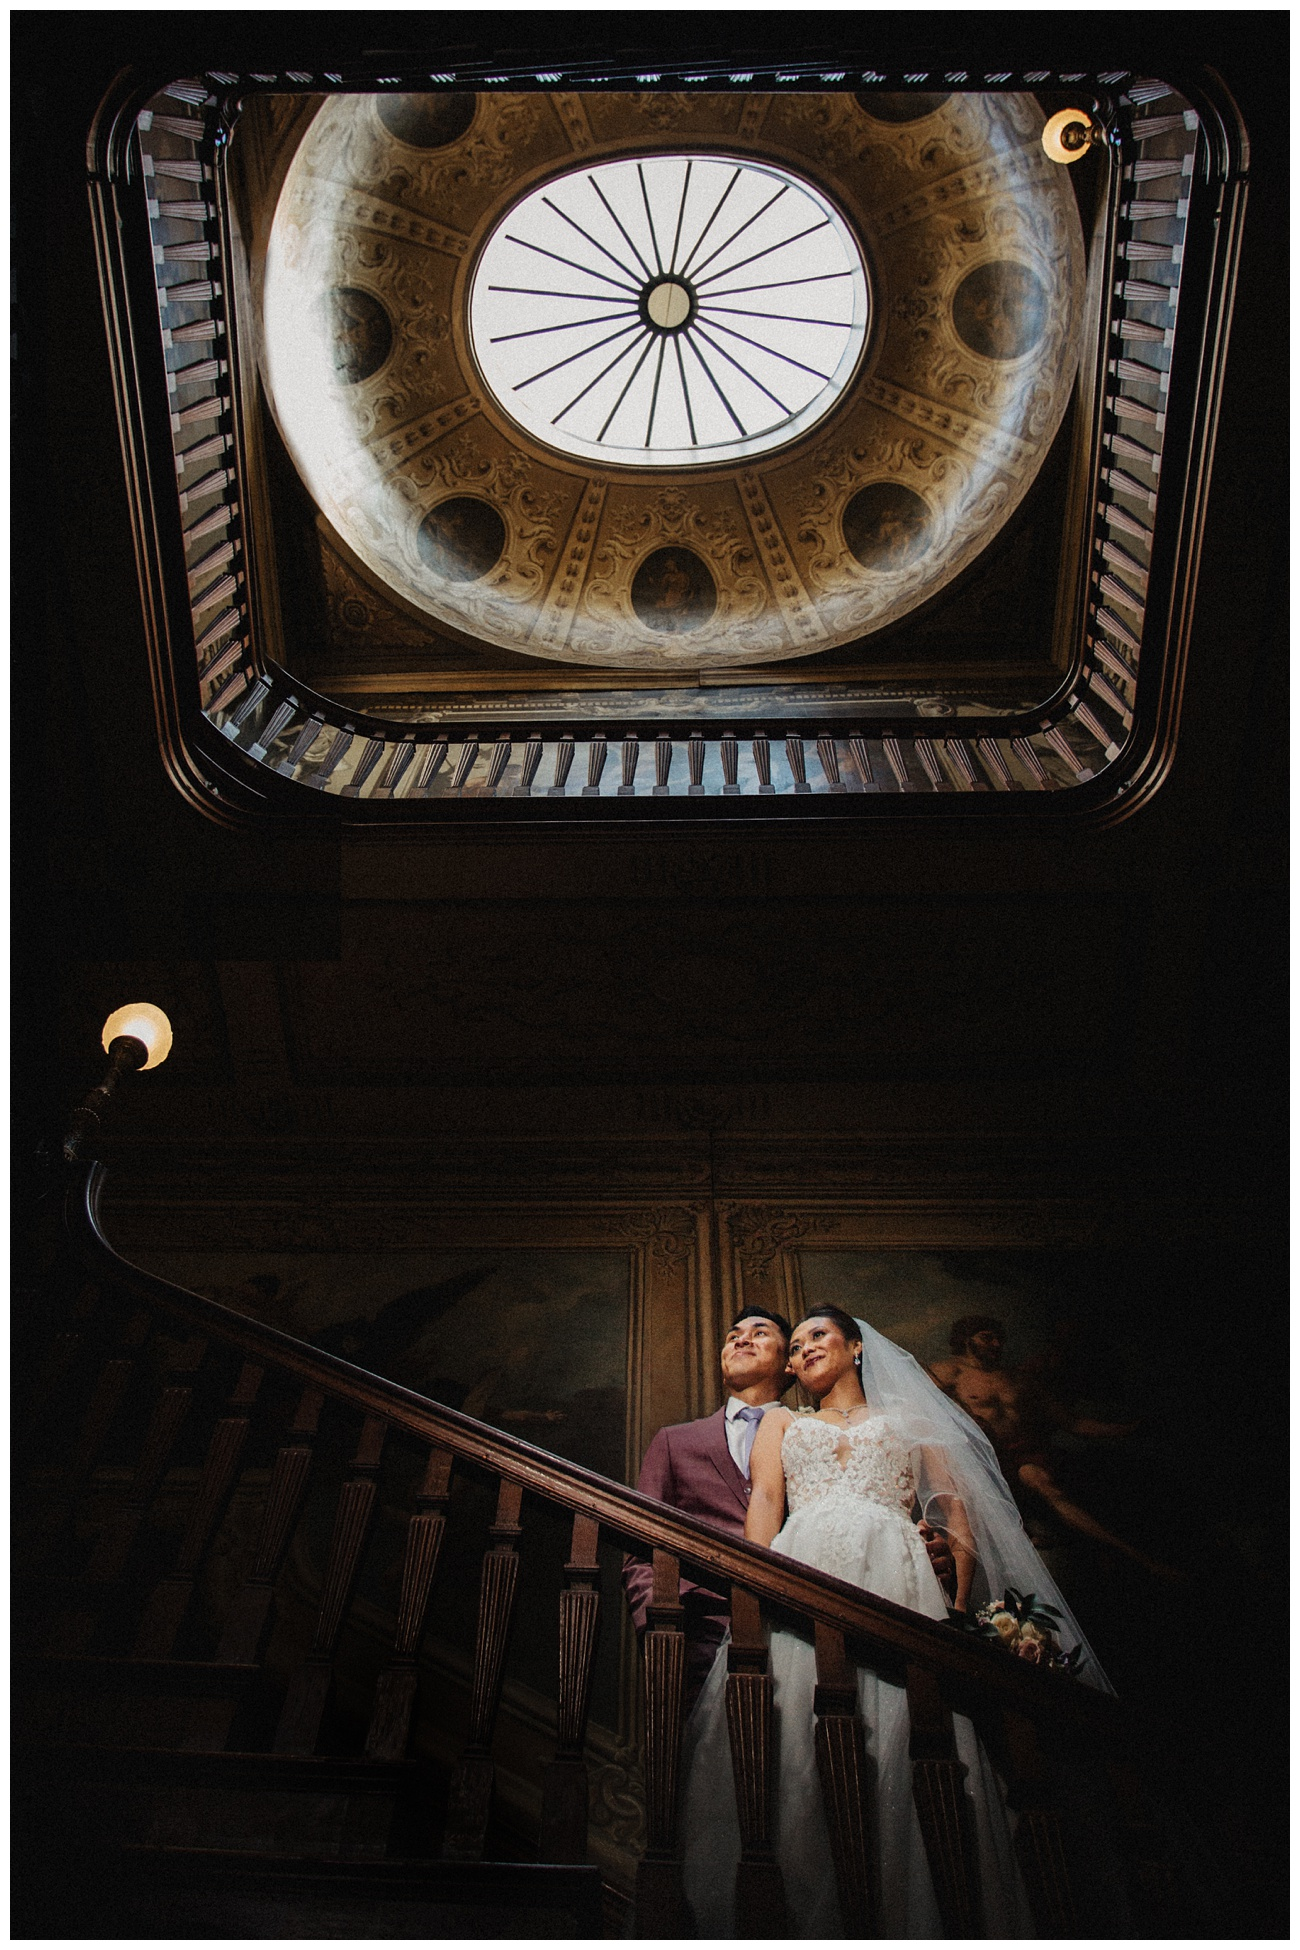 The bride and groom on the staircase at Moor Park Mansion